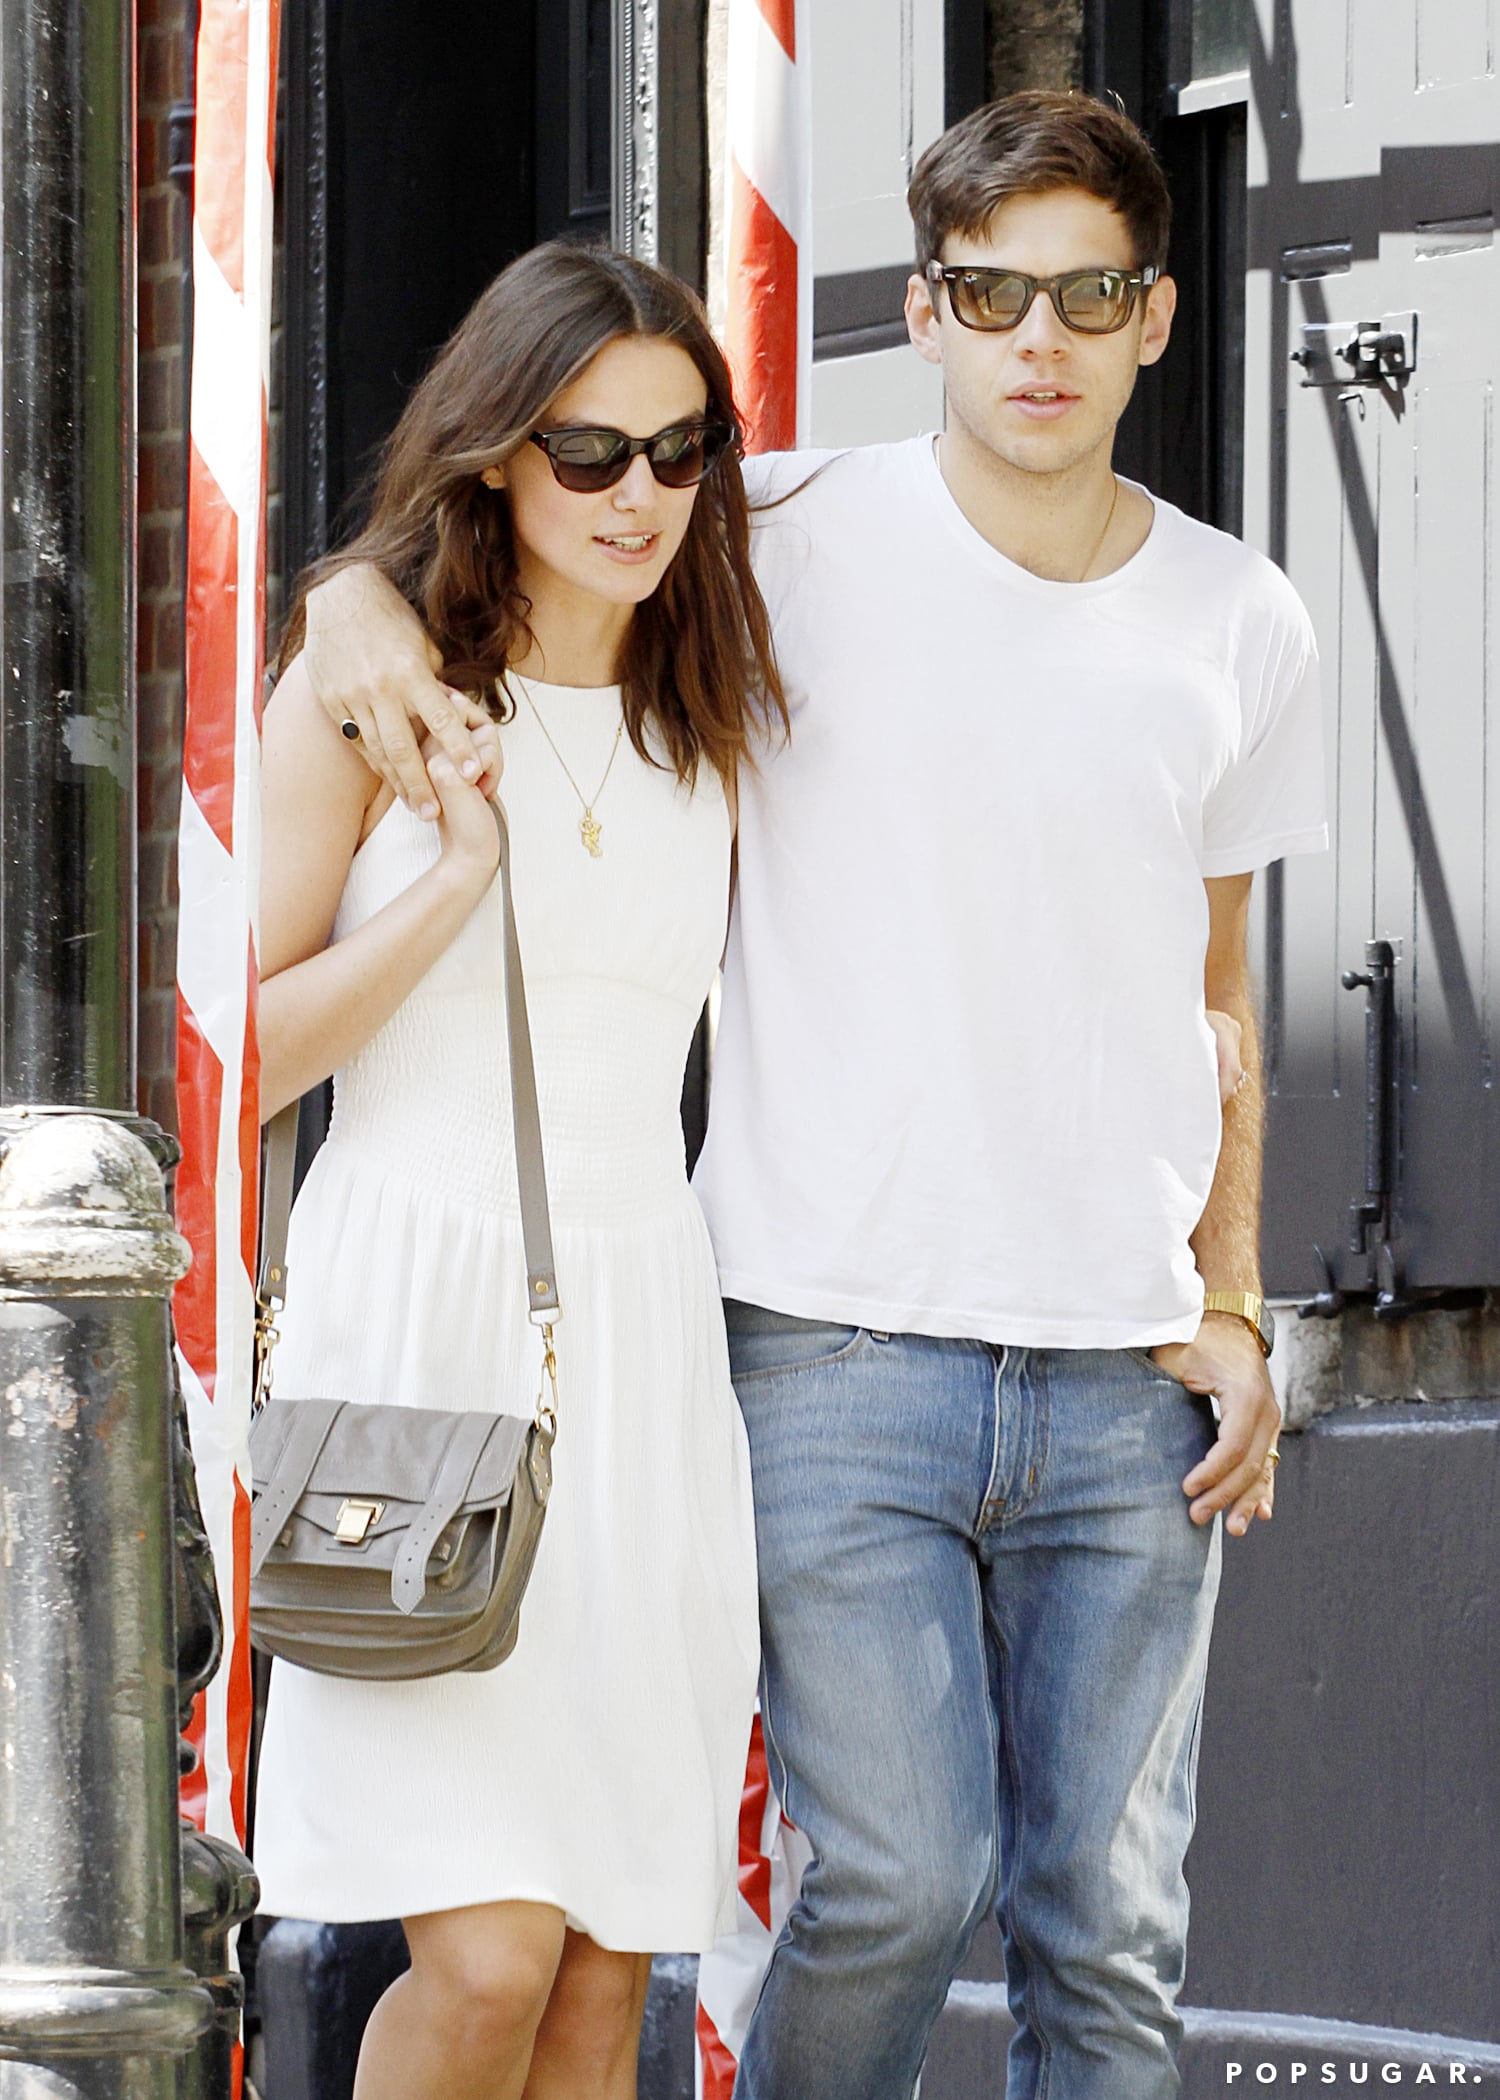 Keira knightley held onto her husband james righton keira and